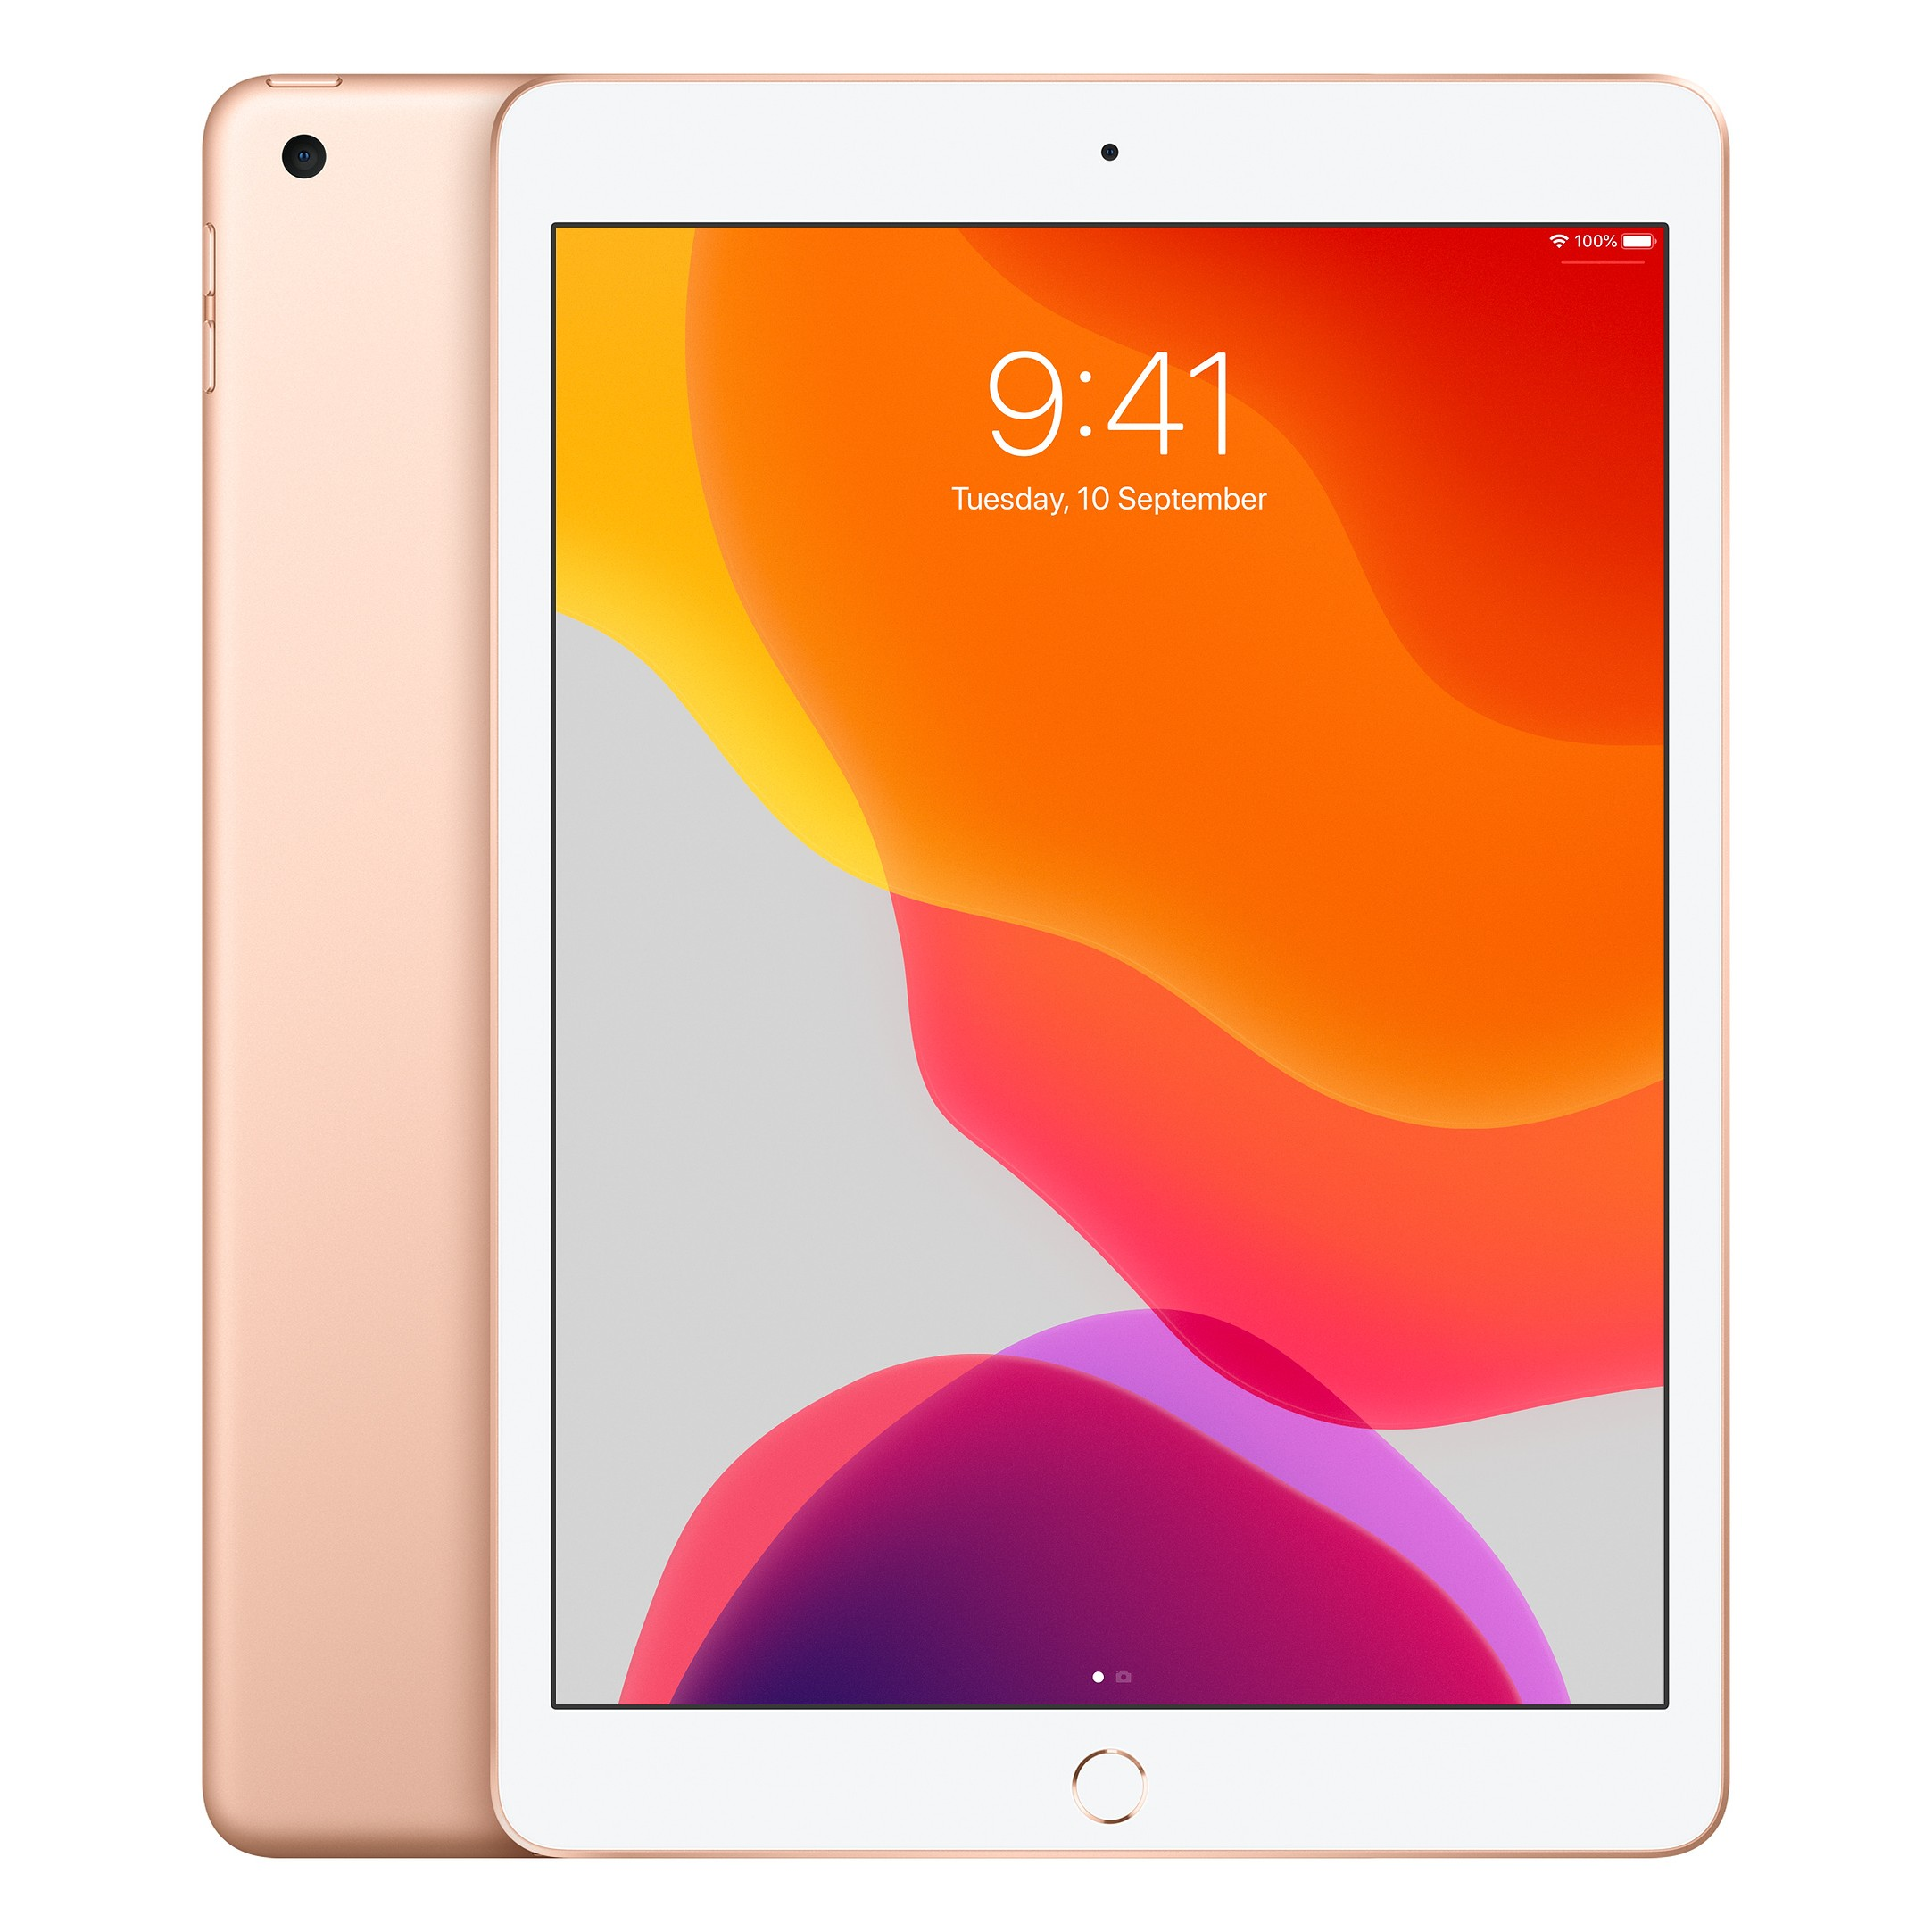 Apple iPad 10.2 (2020) 128GB Wifi with Screen Protector and Folding Case (Black) - Gold